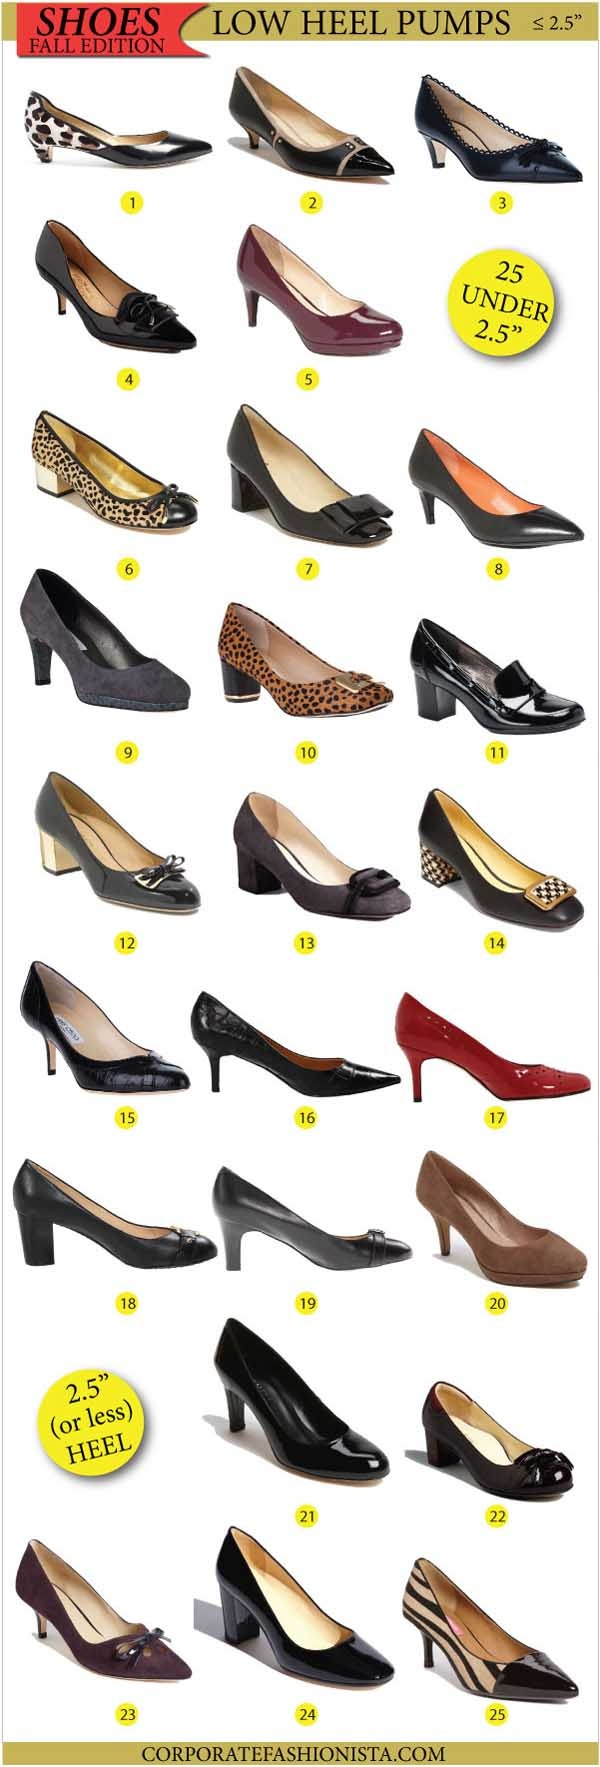 Best 105 shoe with two inch heels set 3 ideas on pinterest heels be fashionably practical 25 classy pumps with heels two and a half inches or less altavistaventures Images